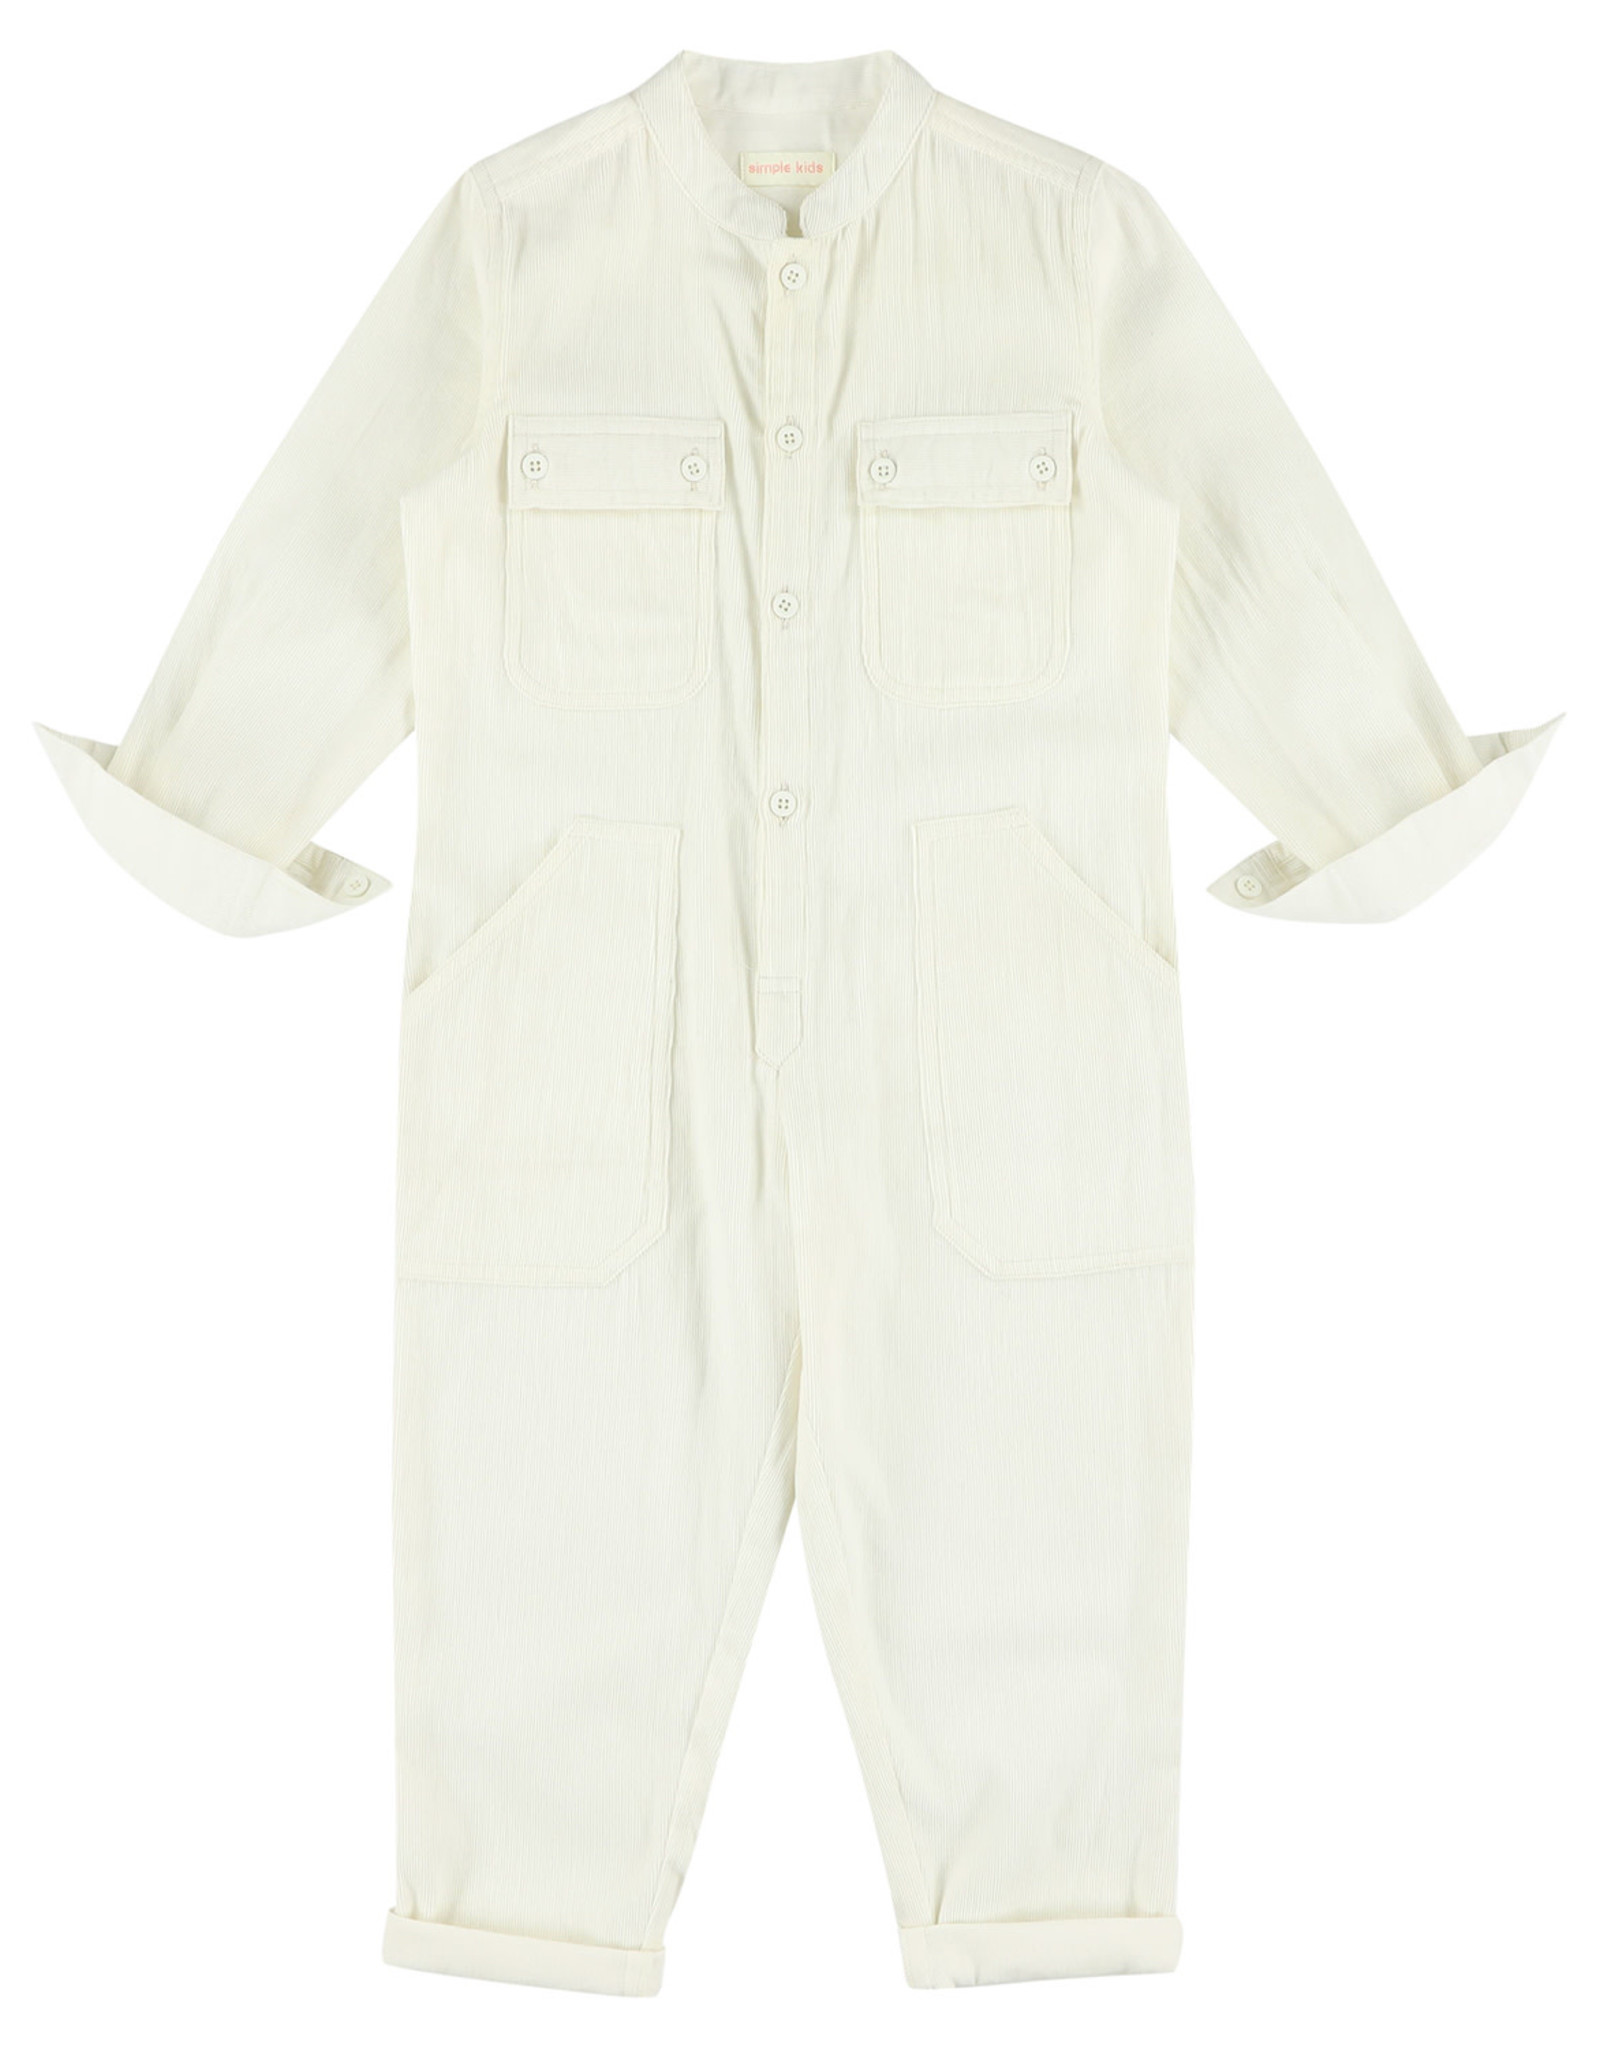 SIMPLE KIDS SIMPLE KIDS Horse bcord white